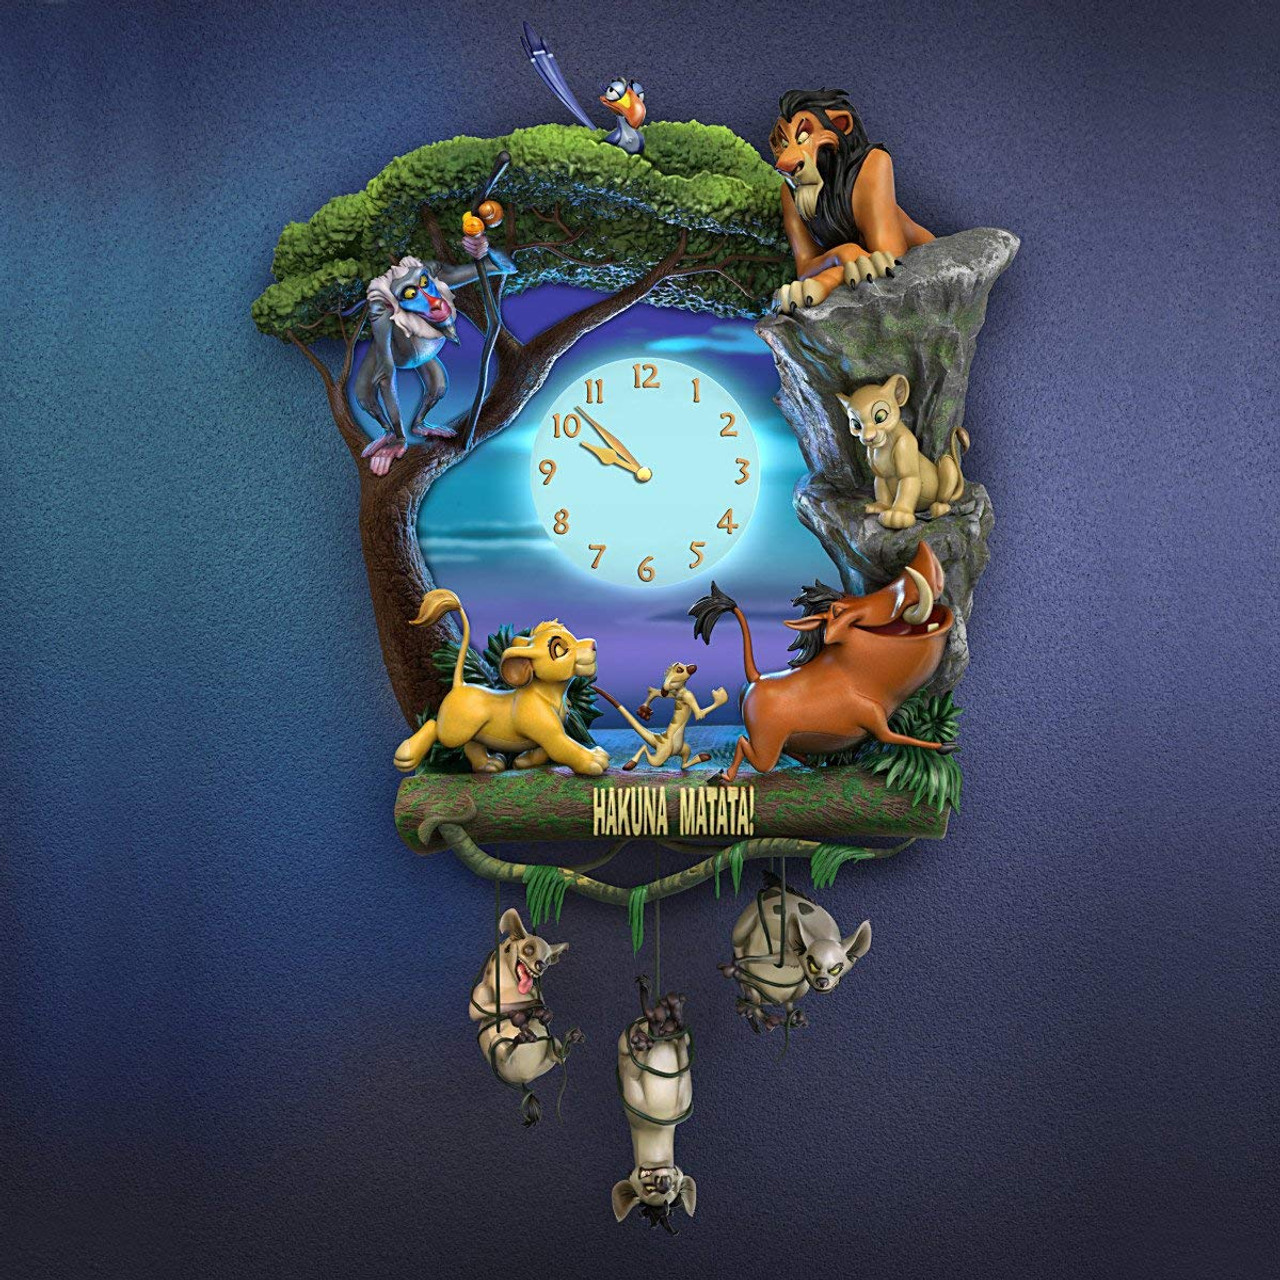 The Bradford Exchange Disney The Lion King Hakuna Matata Wall Clock With Music And Light Up Clock Face Colby Collectibles